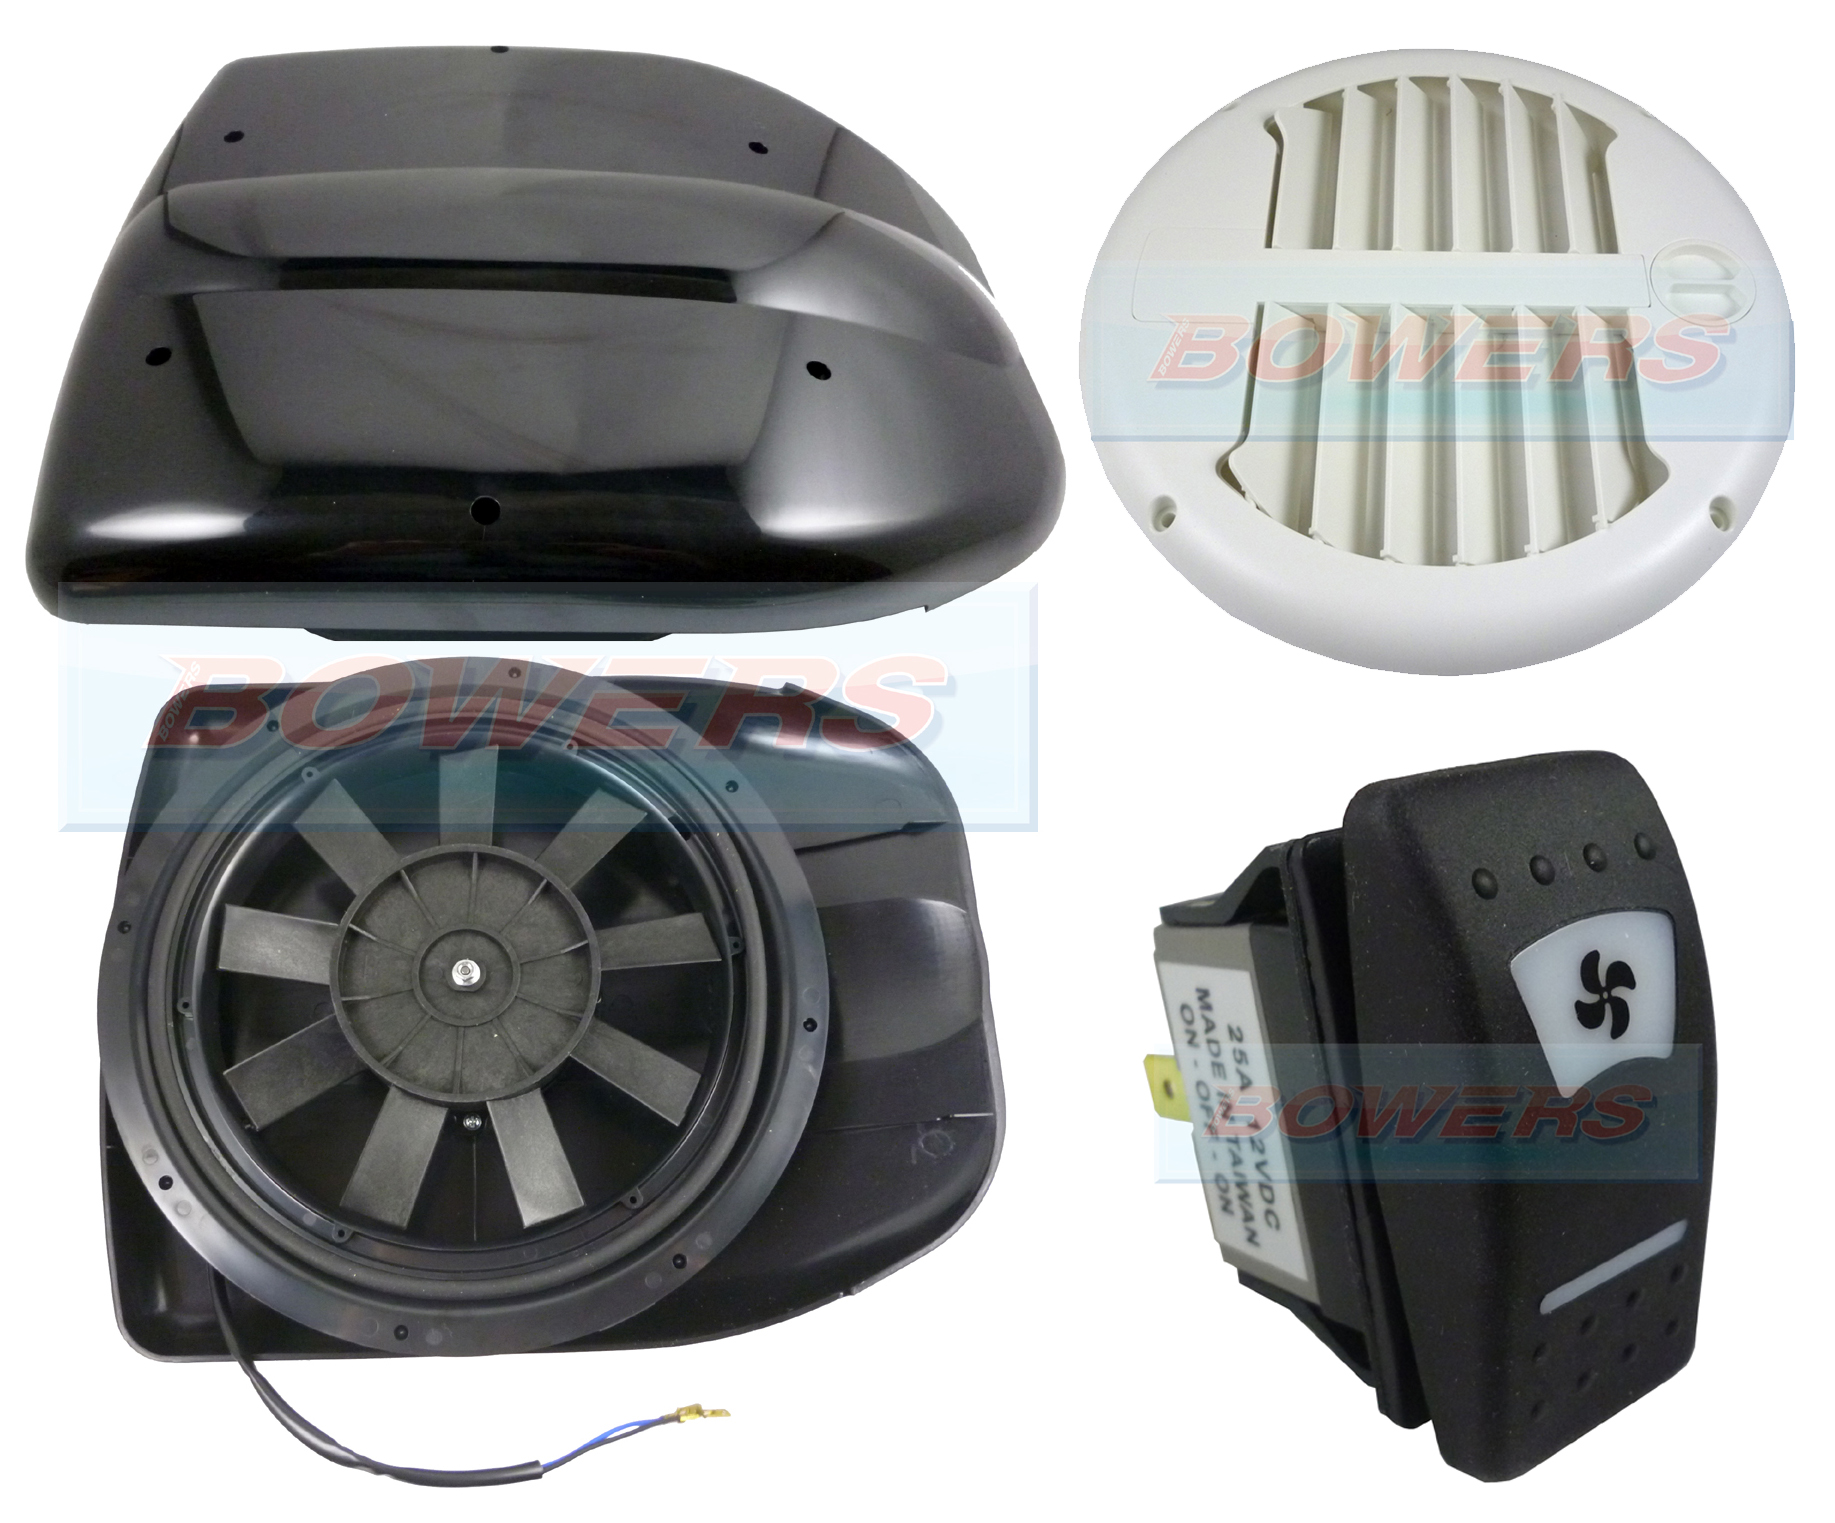 Black 12v Low Profile Motorised Turbo Roof Air Vent Extractor Fan